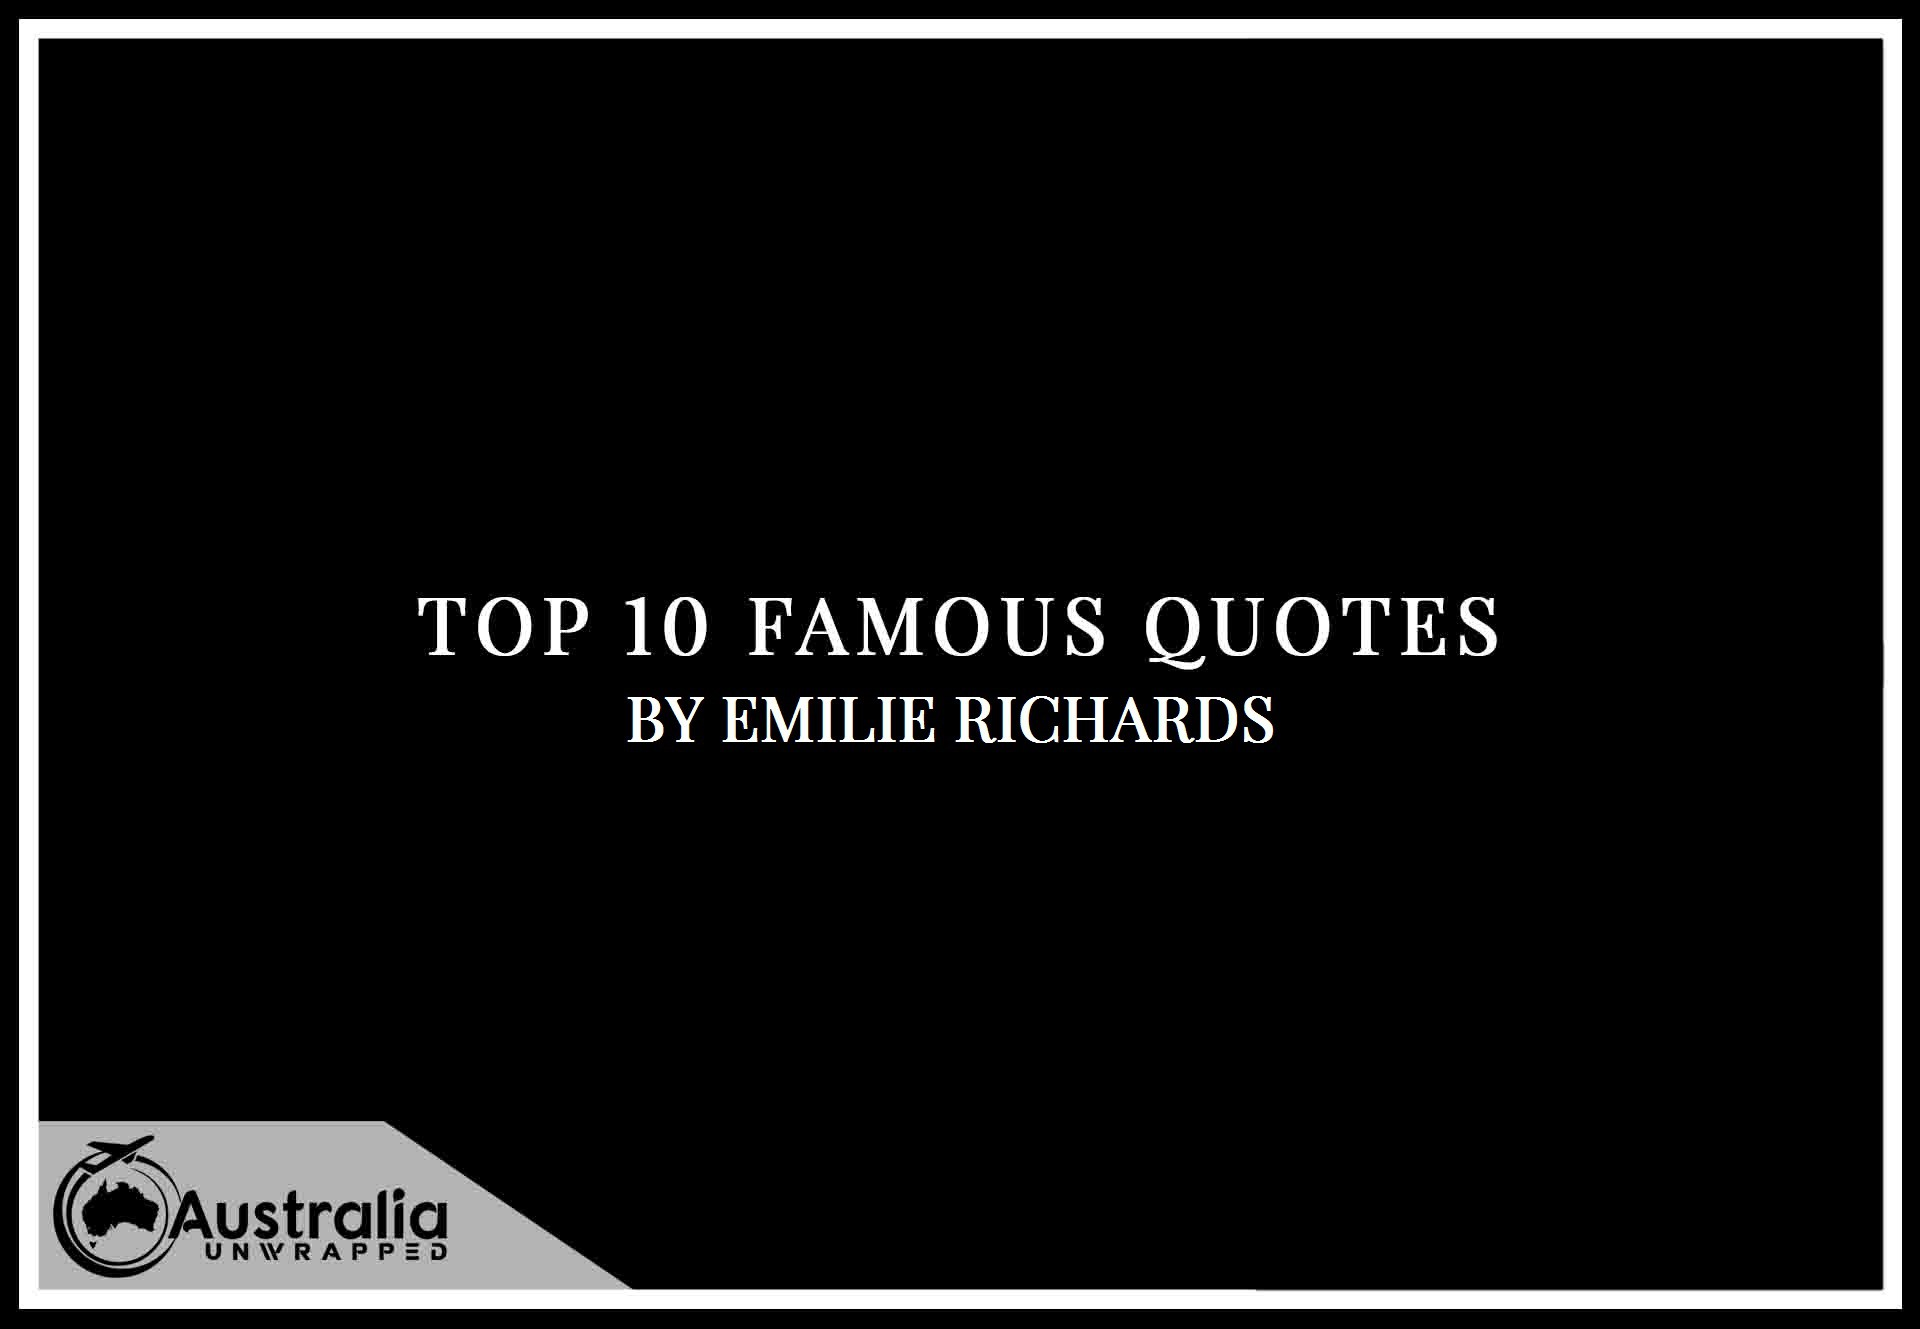 Emilie Richards's Top 10 Popular and Famous Quotes